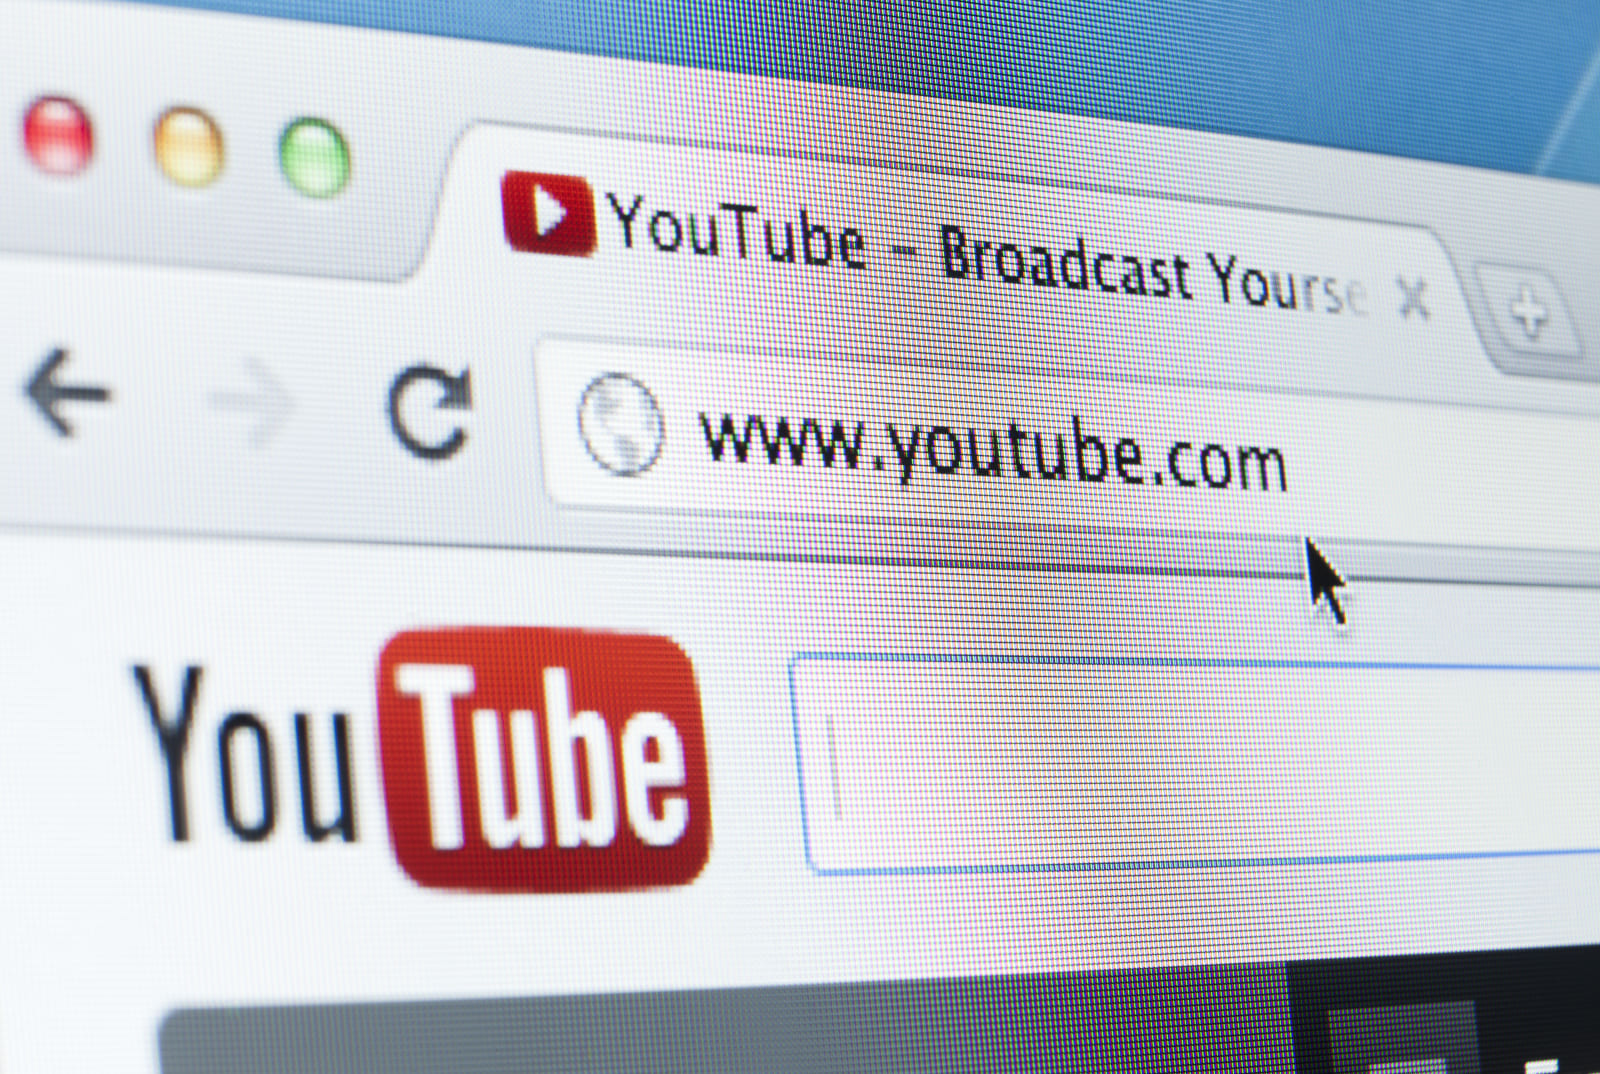 YouTube is testing paid online hangs with influencers